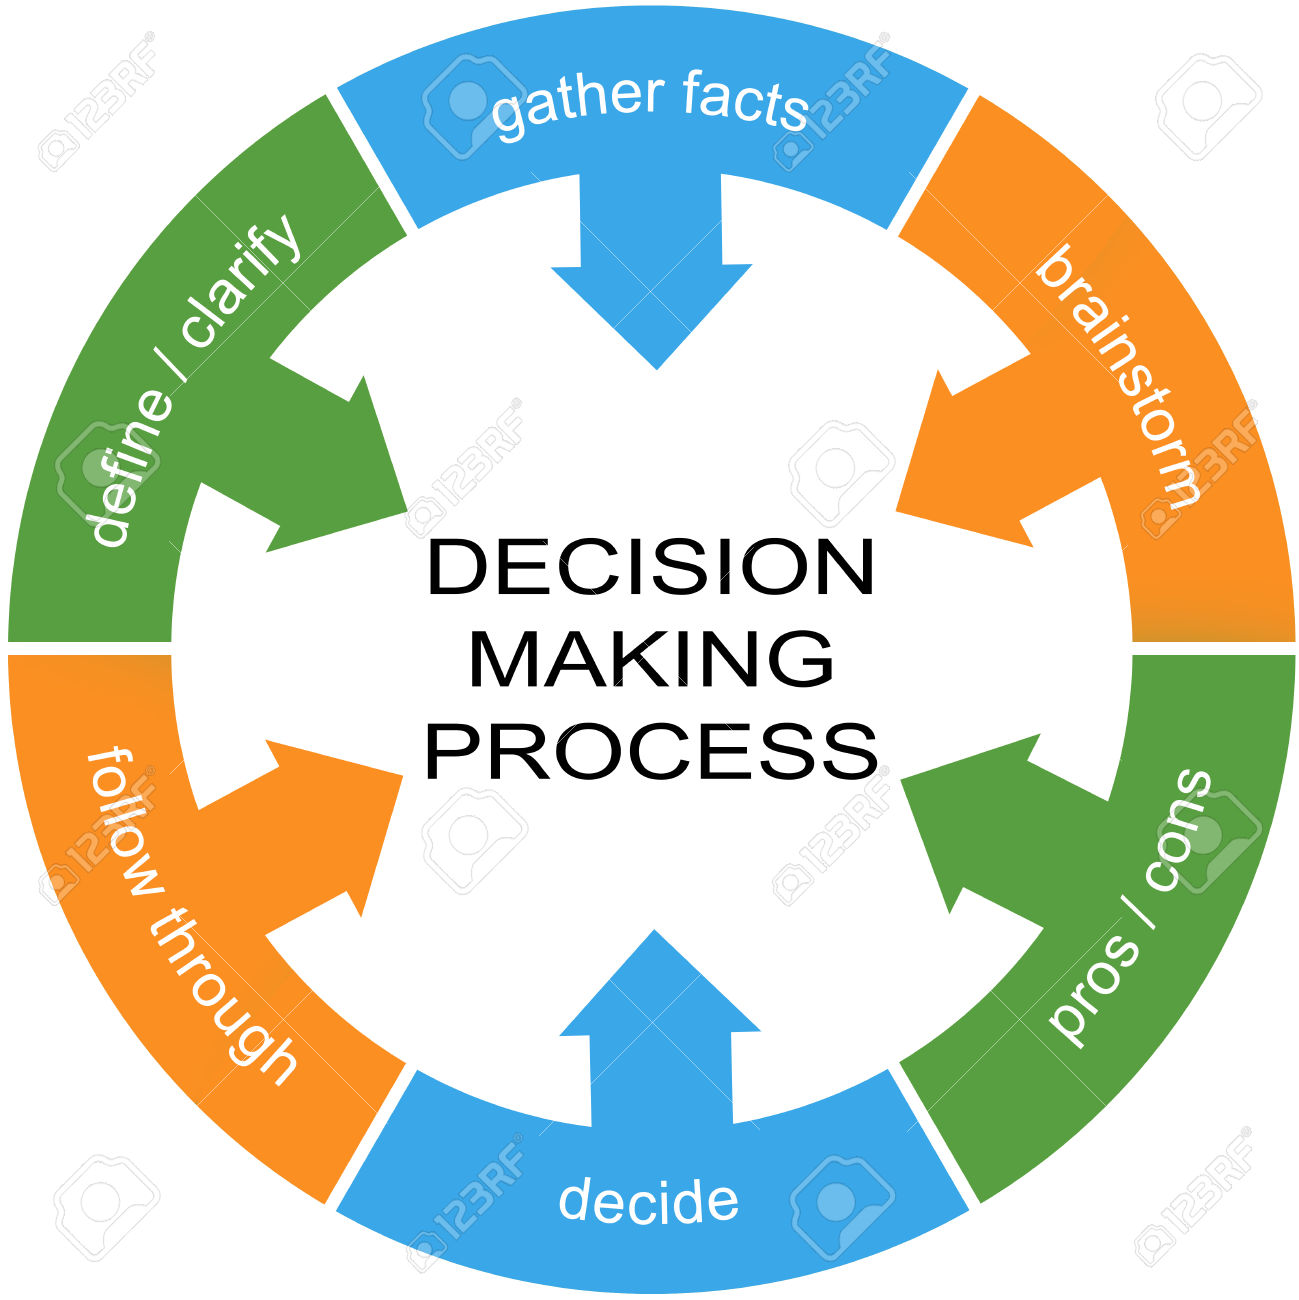 How to Make Decisions